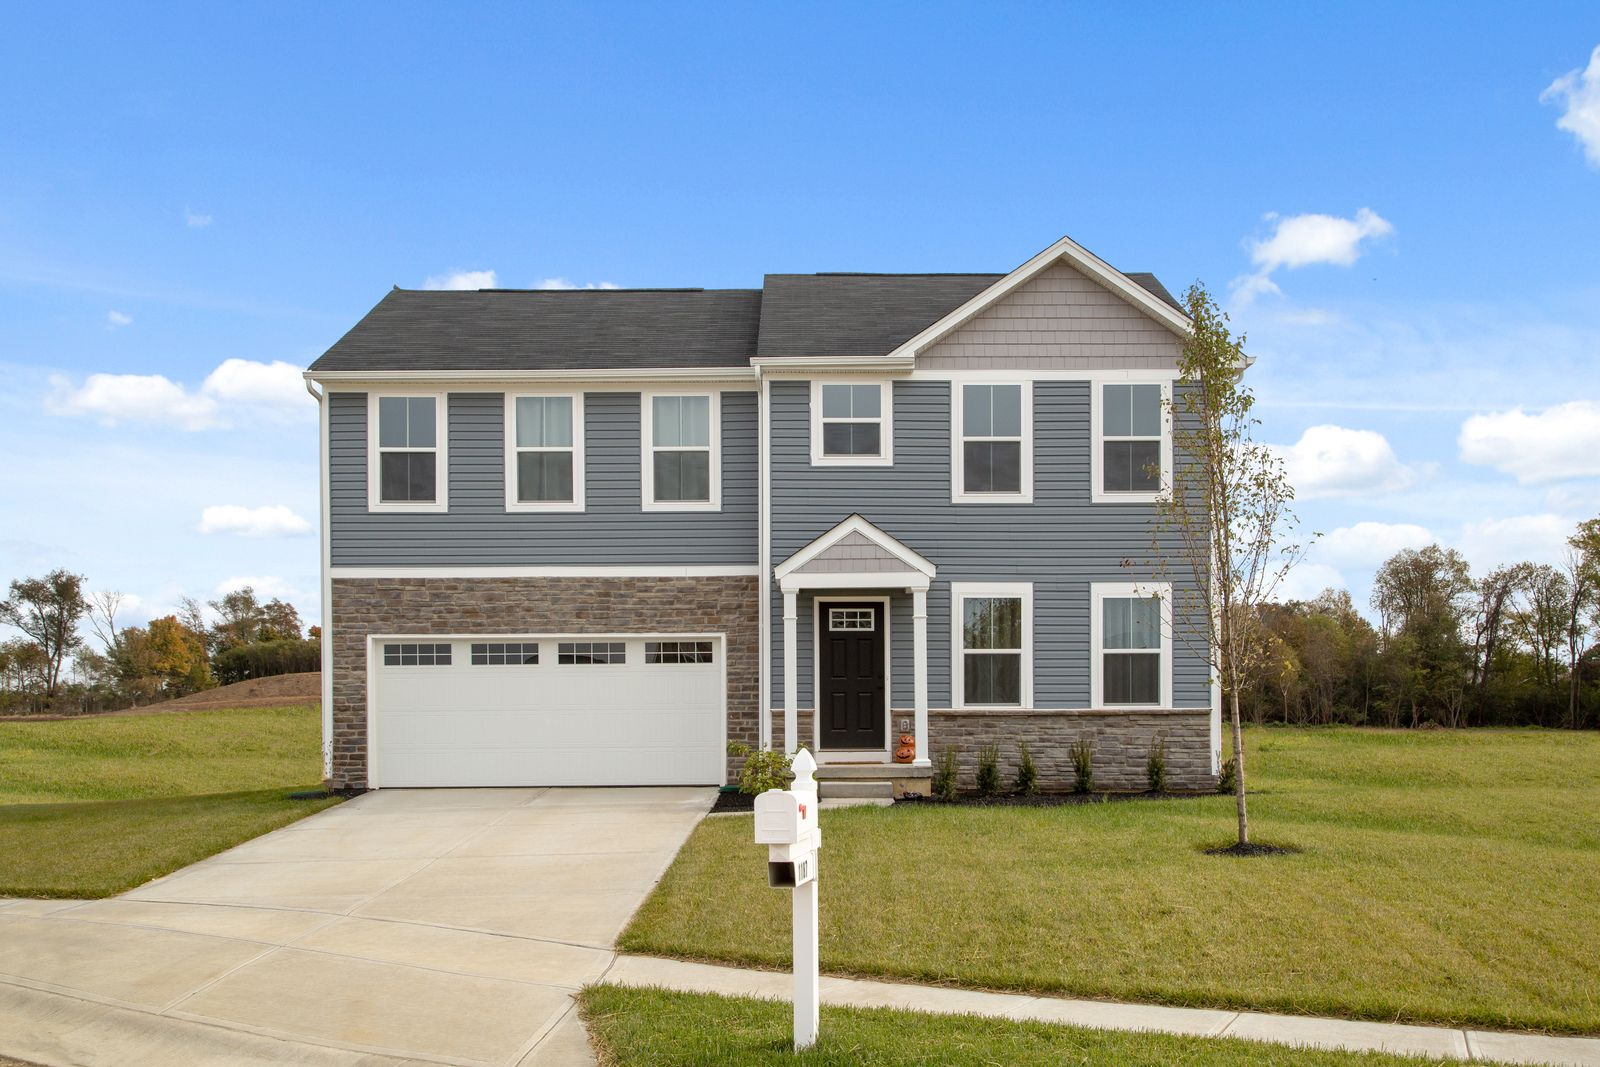 Woodlands at Morrow: New homesites just released!:Schedule your visitto choose your homesite in our newest section. Enjoy wooded views andincluded basements and appliances at an unbeatable value. The best kept secret in Little Miami Schools.